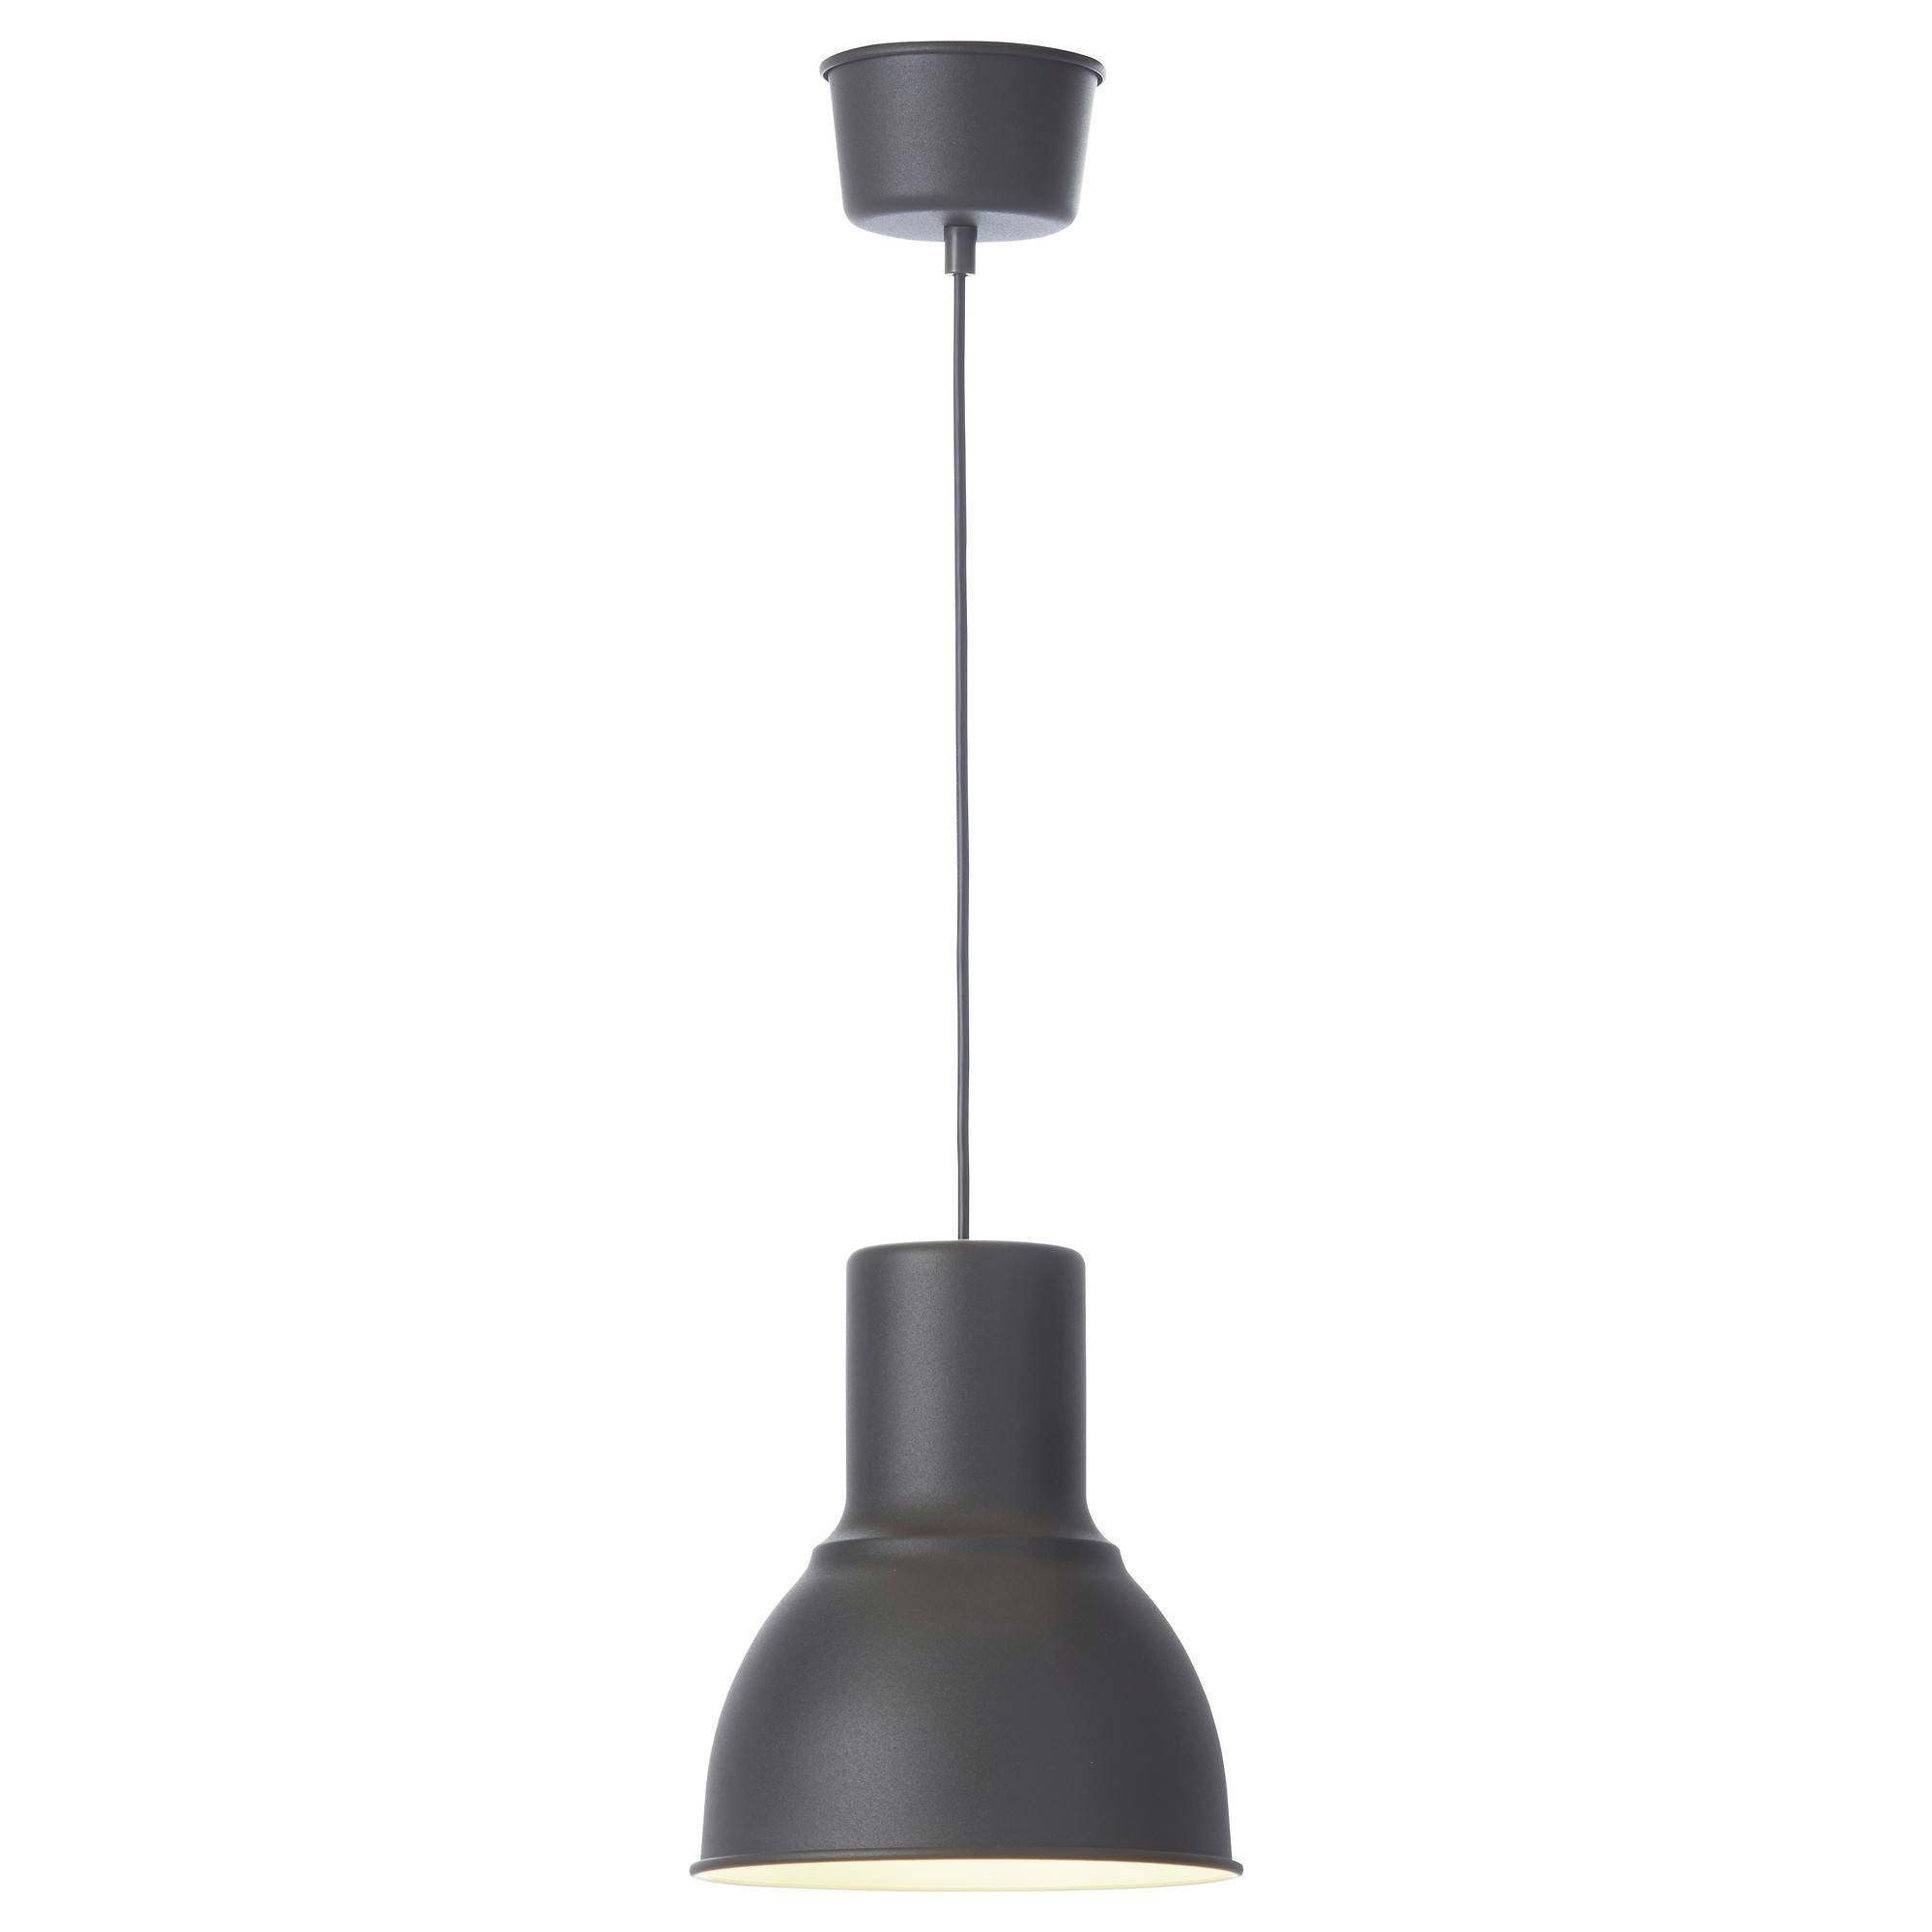 Ceiling Lights & Lamps - Ikea pertaining to Ikea Plug In Pendant Lights (Image 1 of 15)